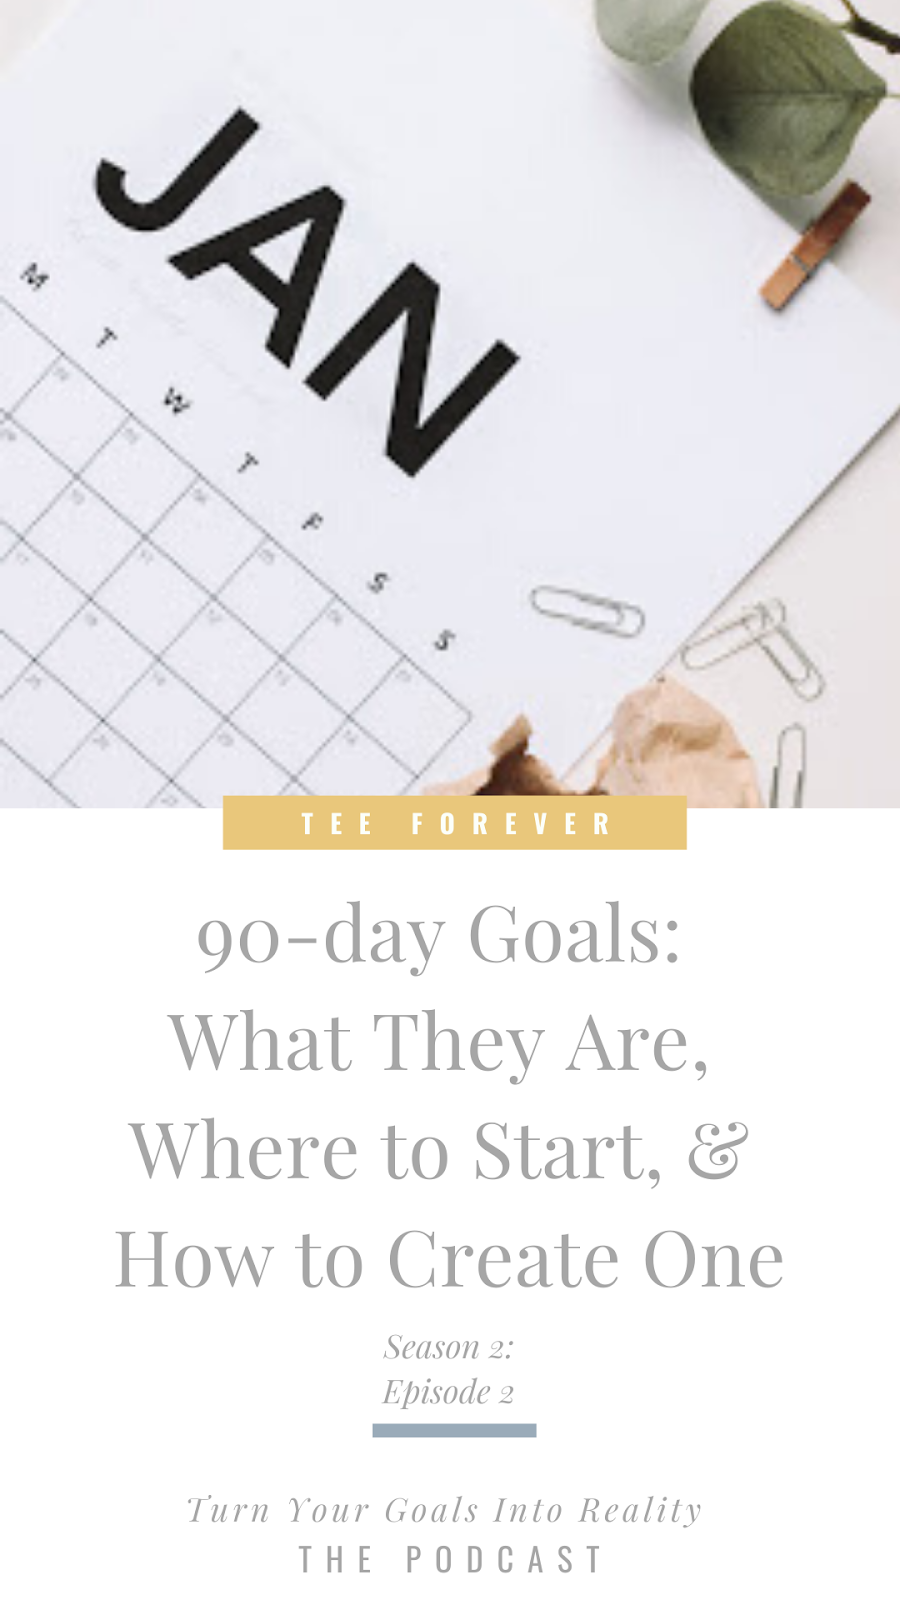 90-day Goals: What They Are, Where to Start, & How to Create One